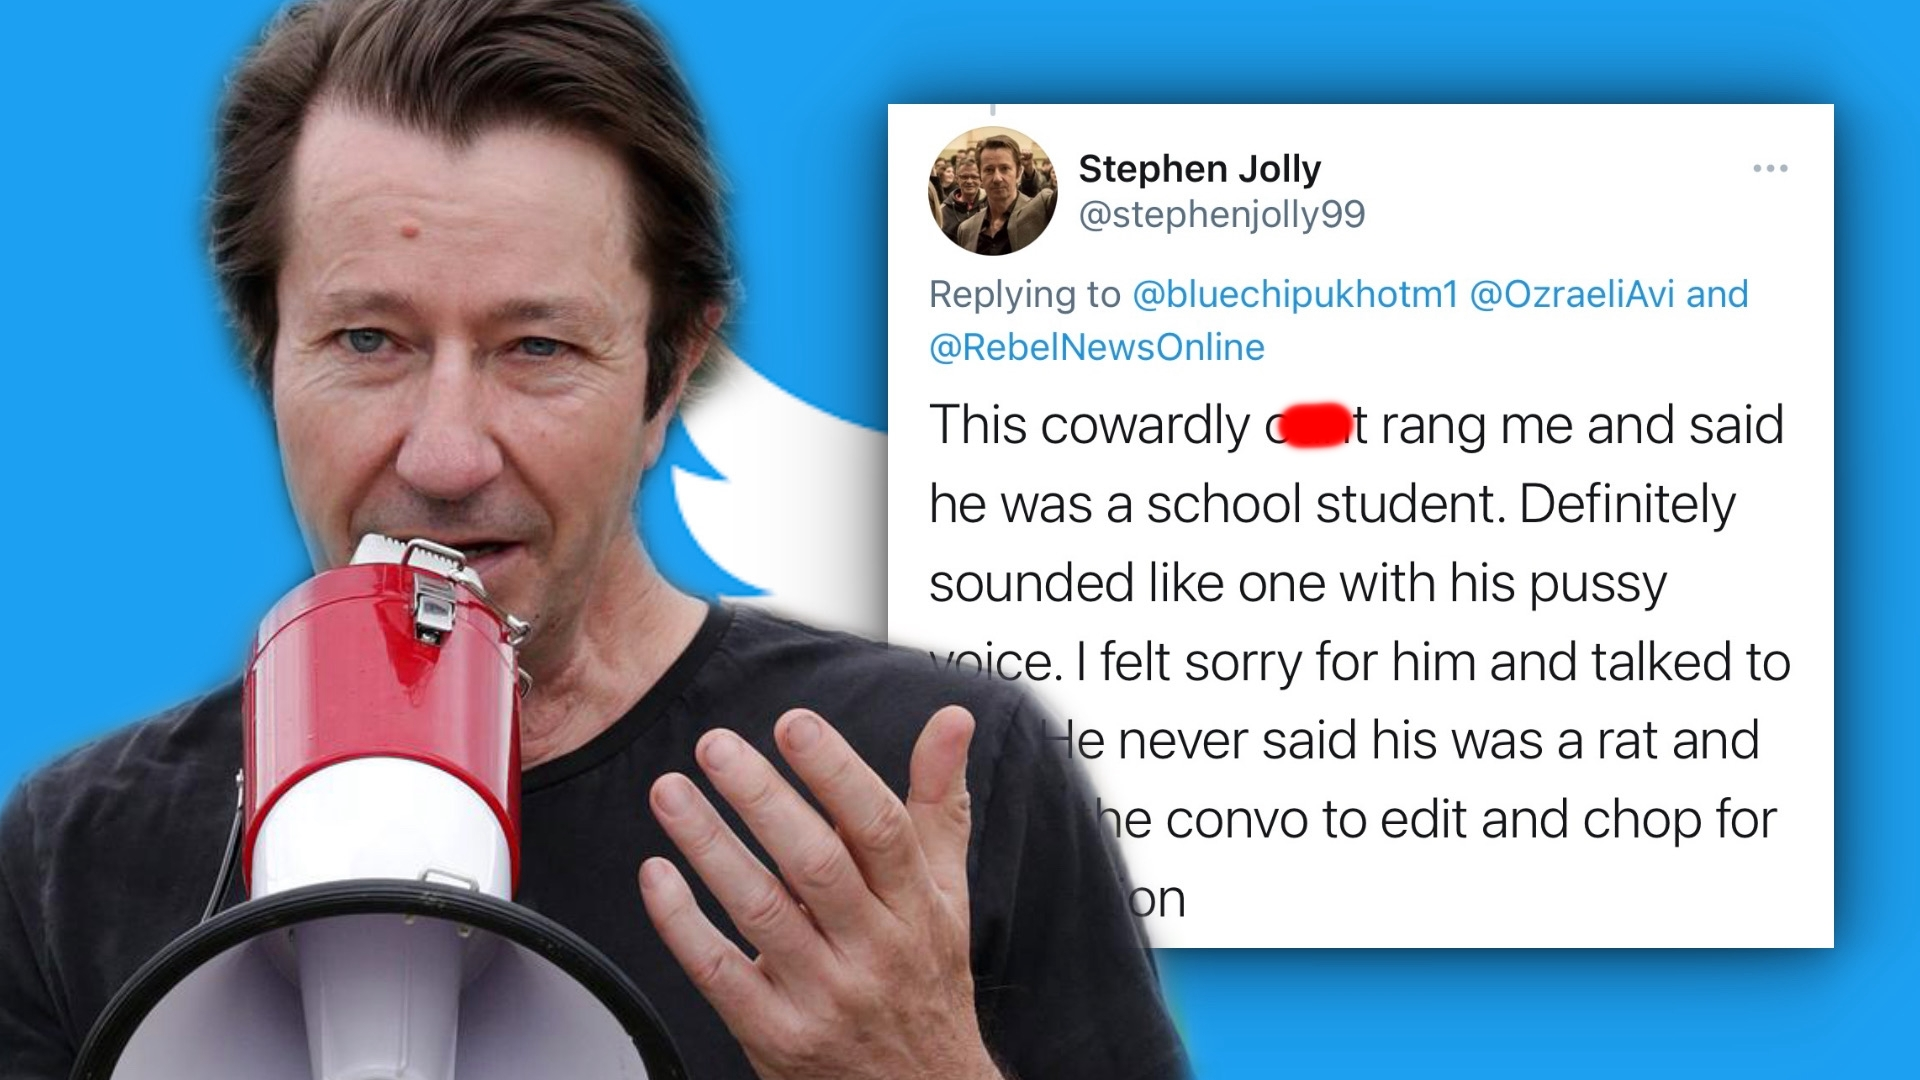 City of Yarra councillor turns vile after getting exposed by Avi Yemini